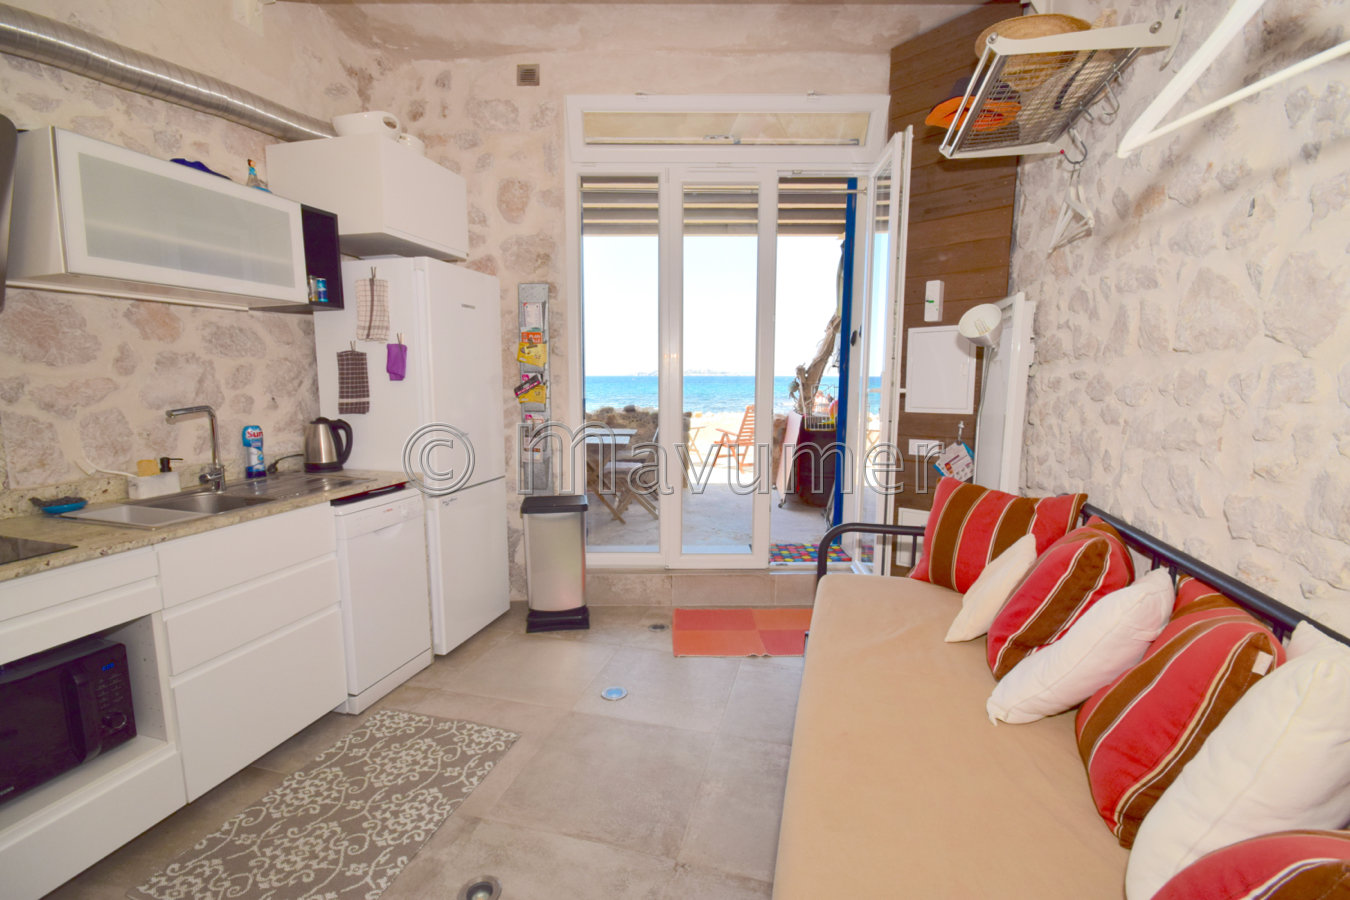 Sale Apartment - Marseille 8ème Montredon